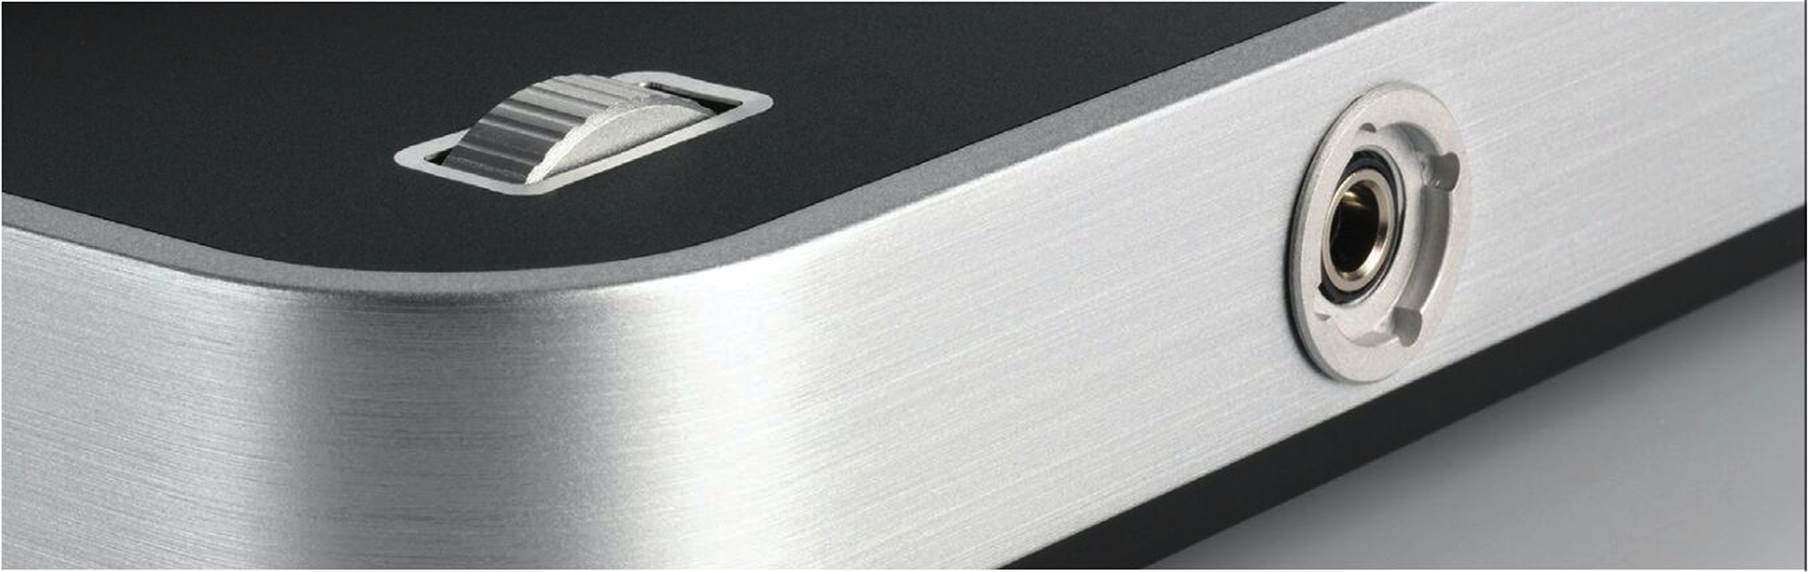 Clearaudio Concept Active Review